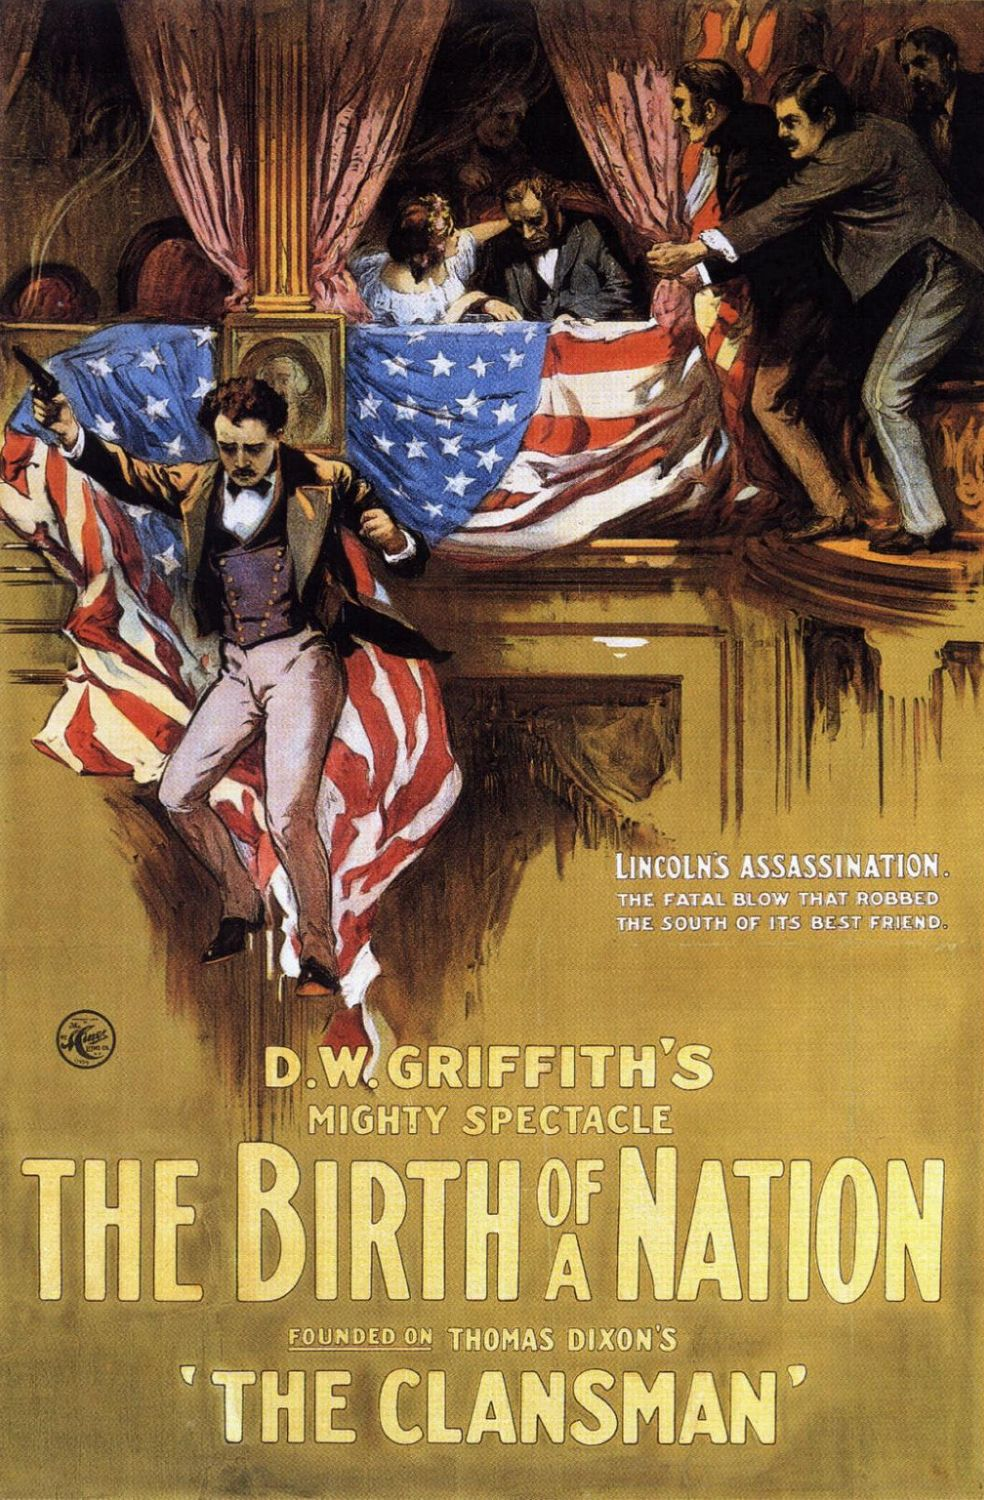 the birth of a nation by dw griffith first docu drama The birth of a nation: hbo first look 2016 pg cc america history the birth of freedom & birth of a nation history documentary dw griffith genre drama.